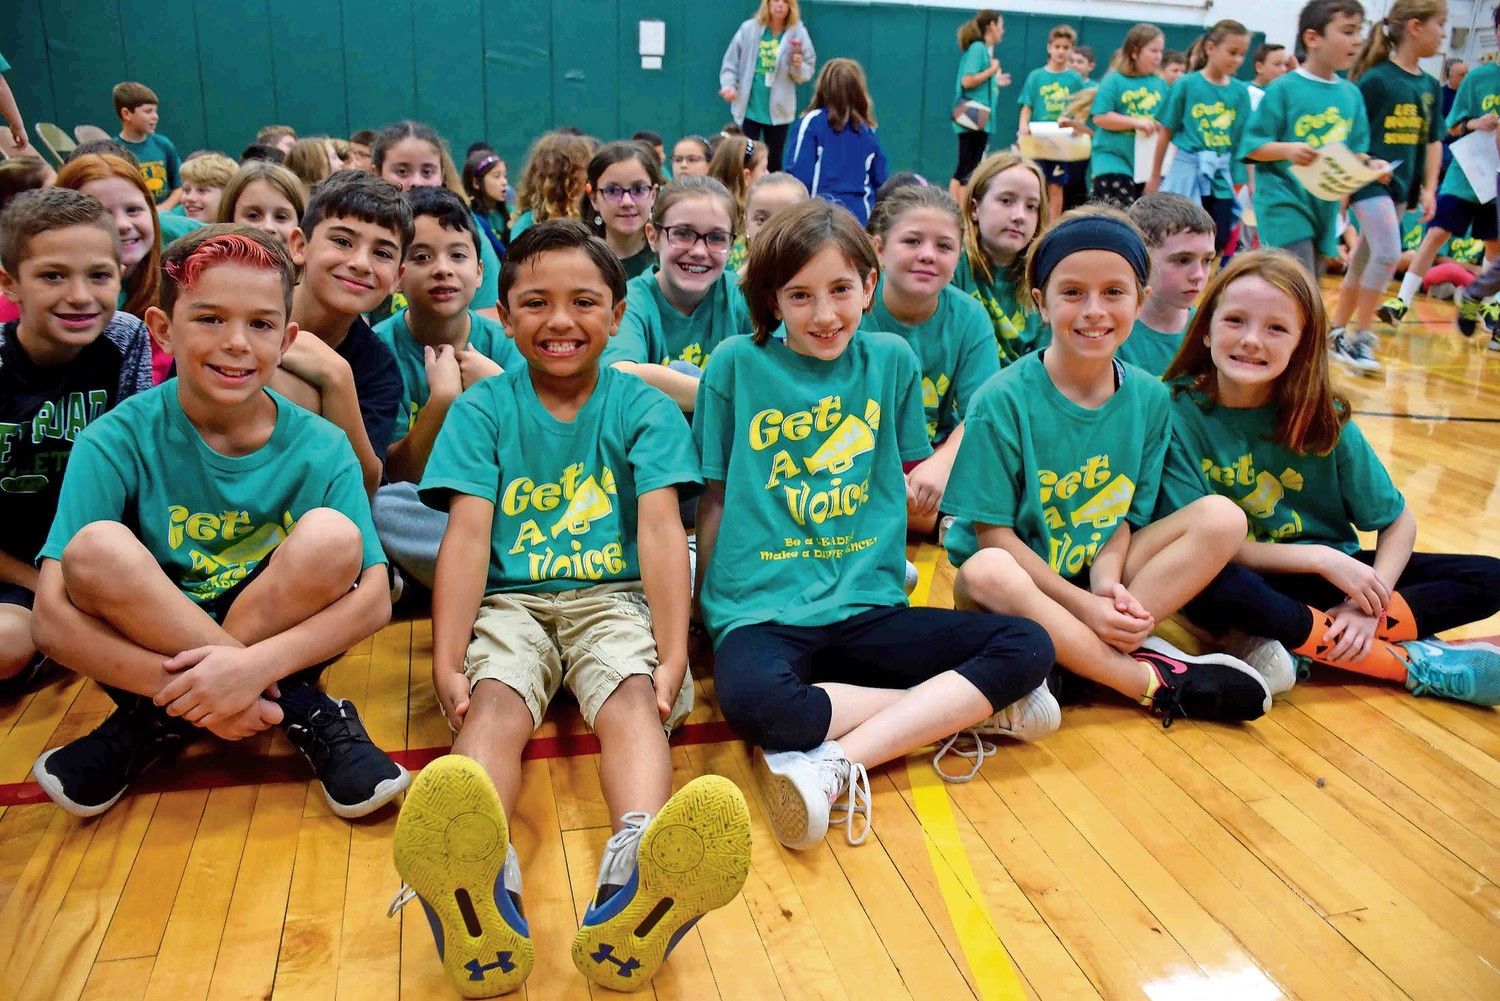 Lee Road Elementary School students dressed in matching T-shirts during the Get-A-Voice Program kickoff.